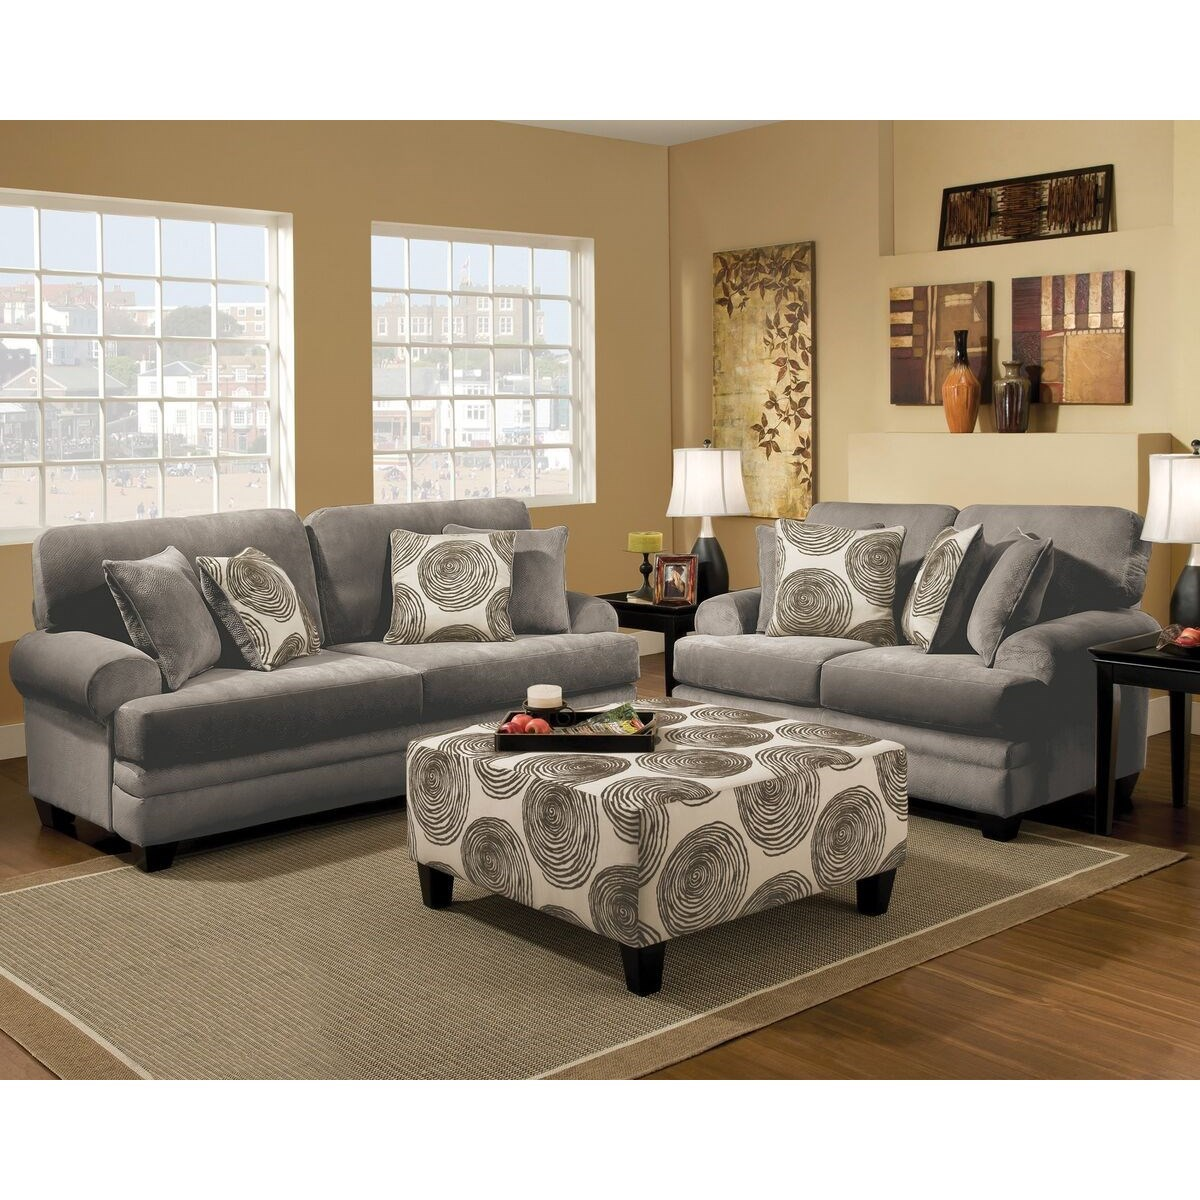 Albany 8642 8642-10-GENS-35292 Transitional Loveseat With